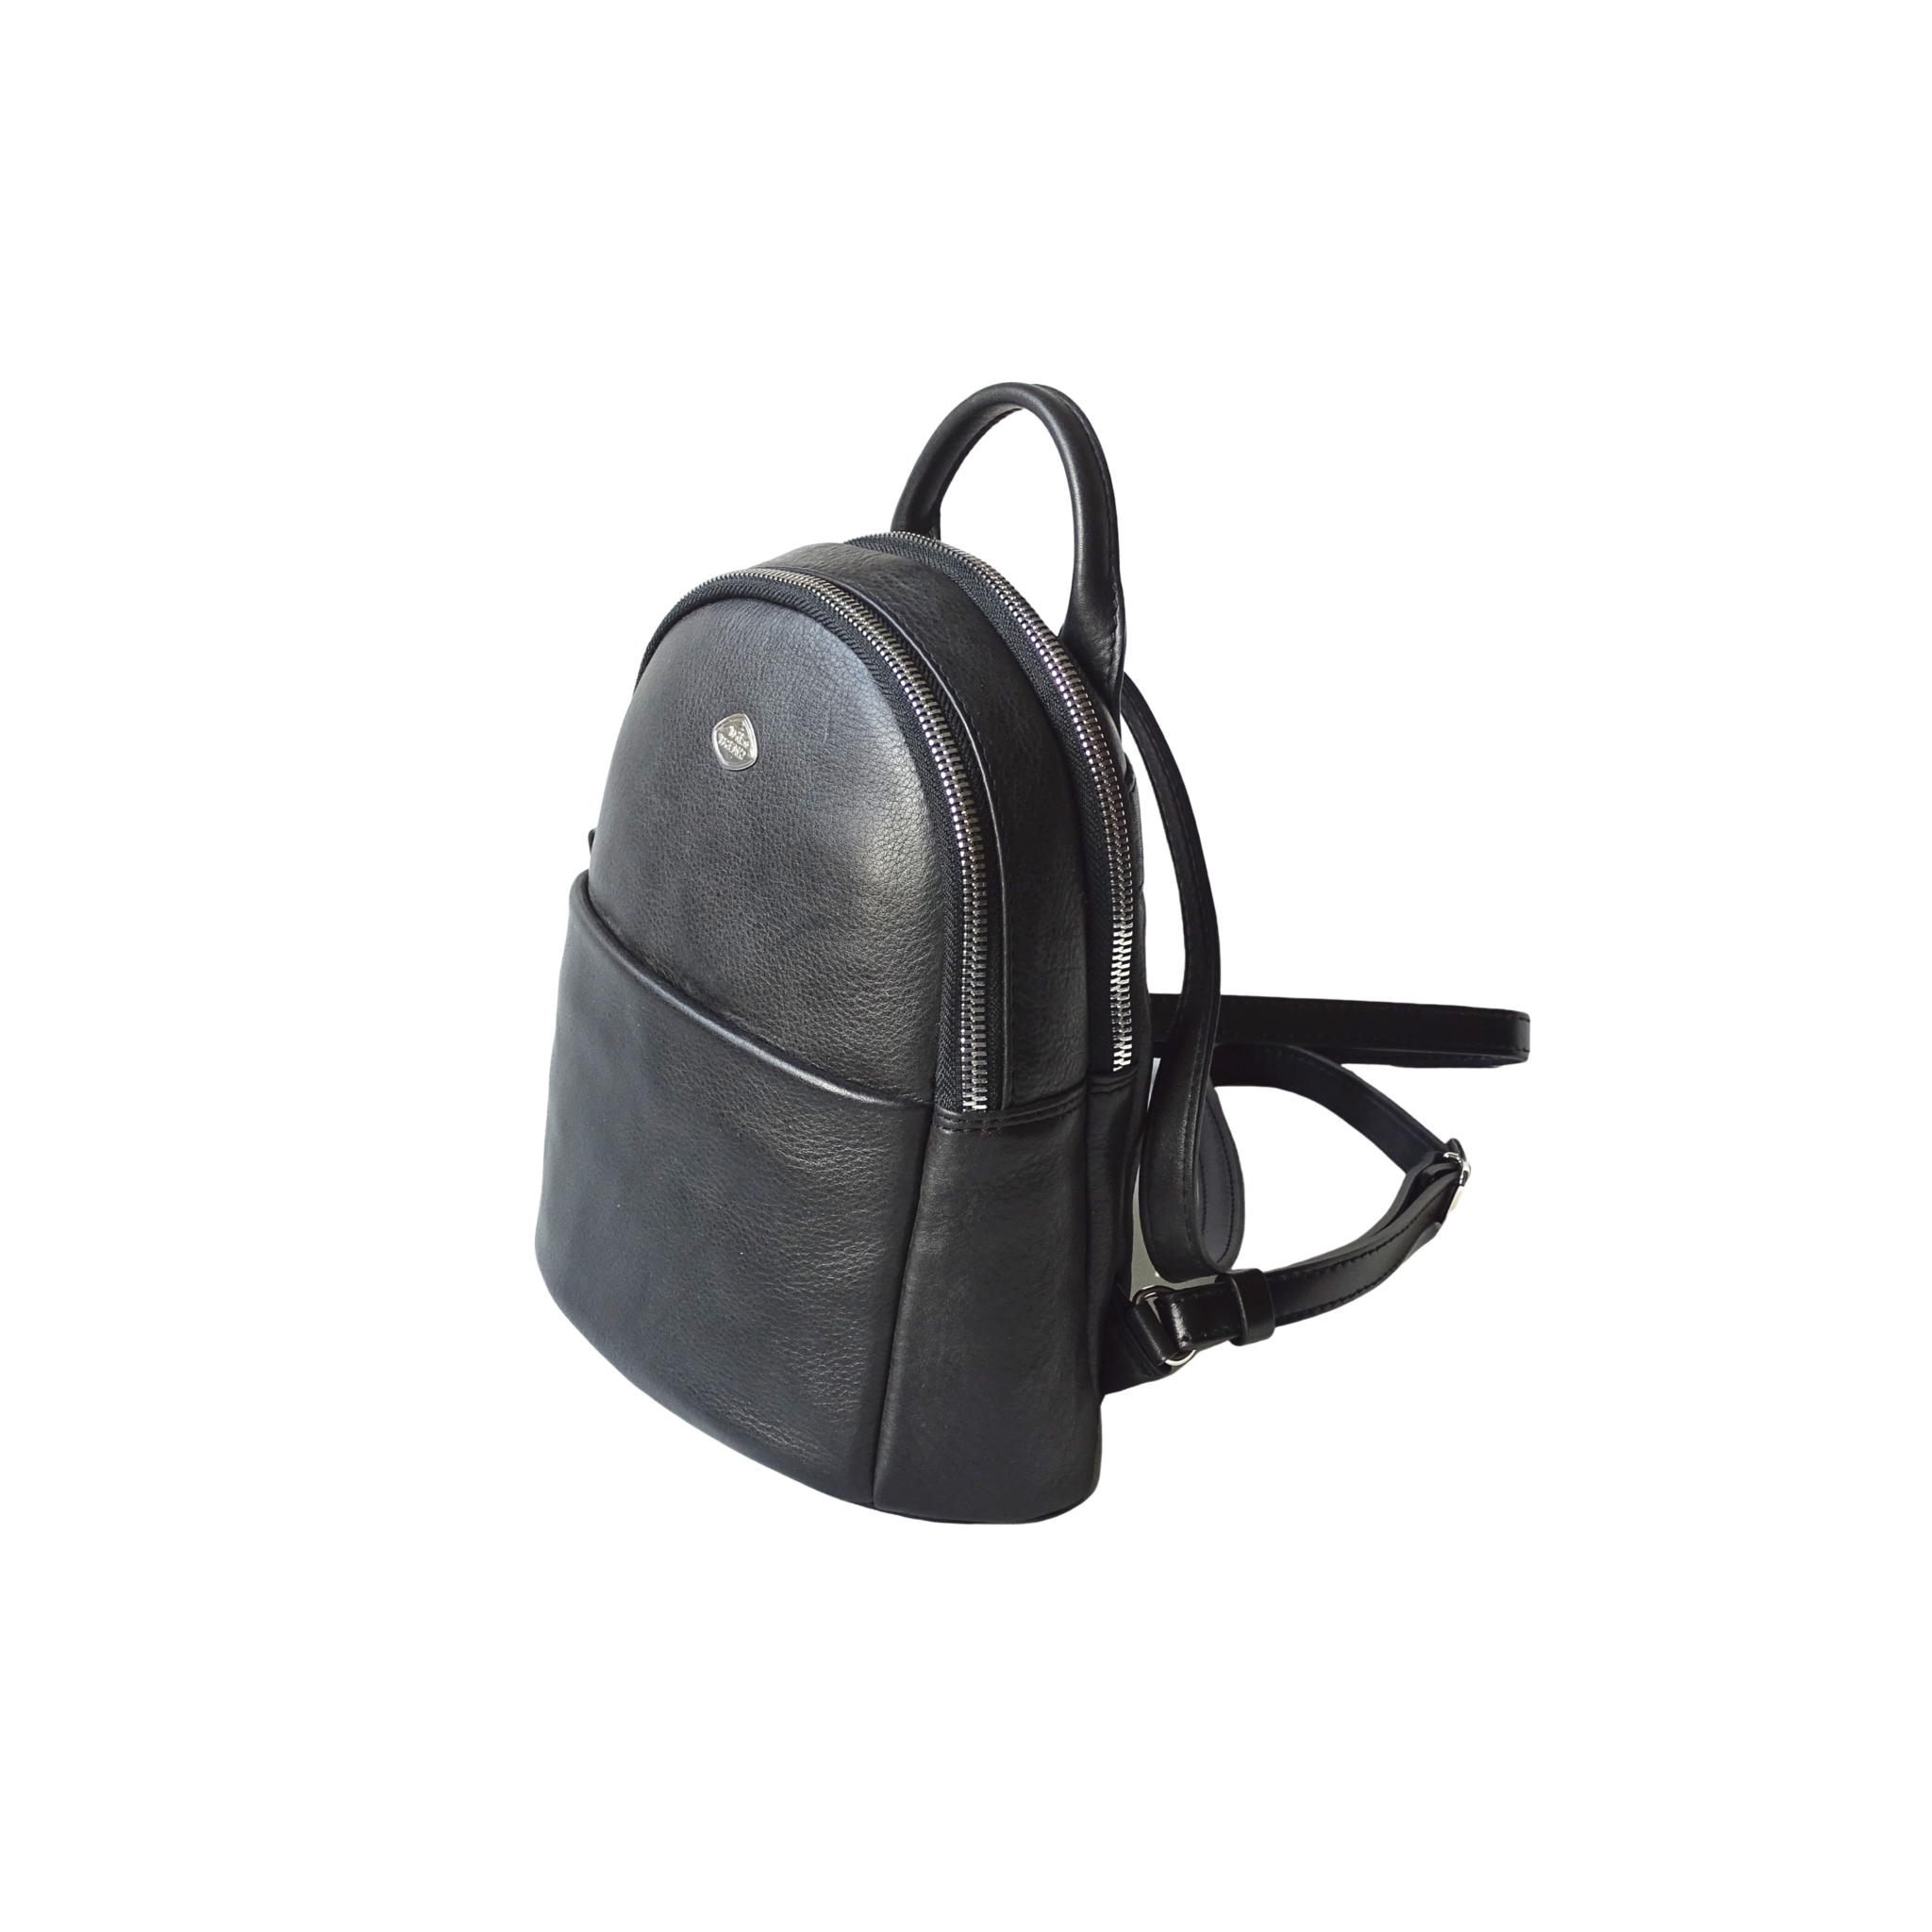 The Trend The Trend small backpack black (584534)